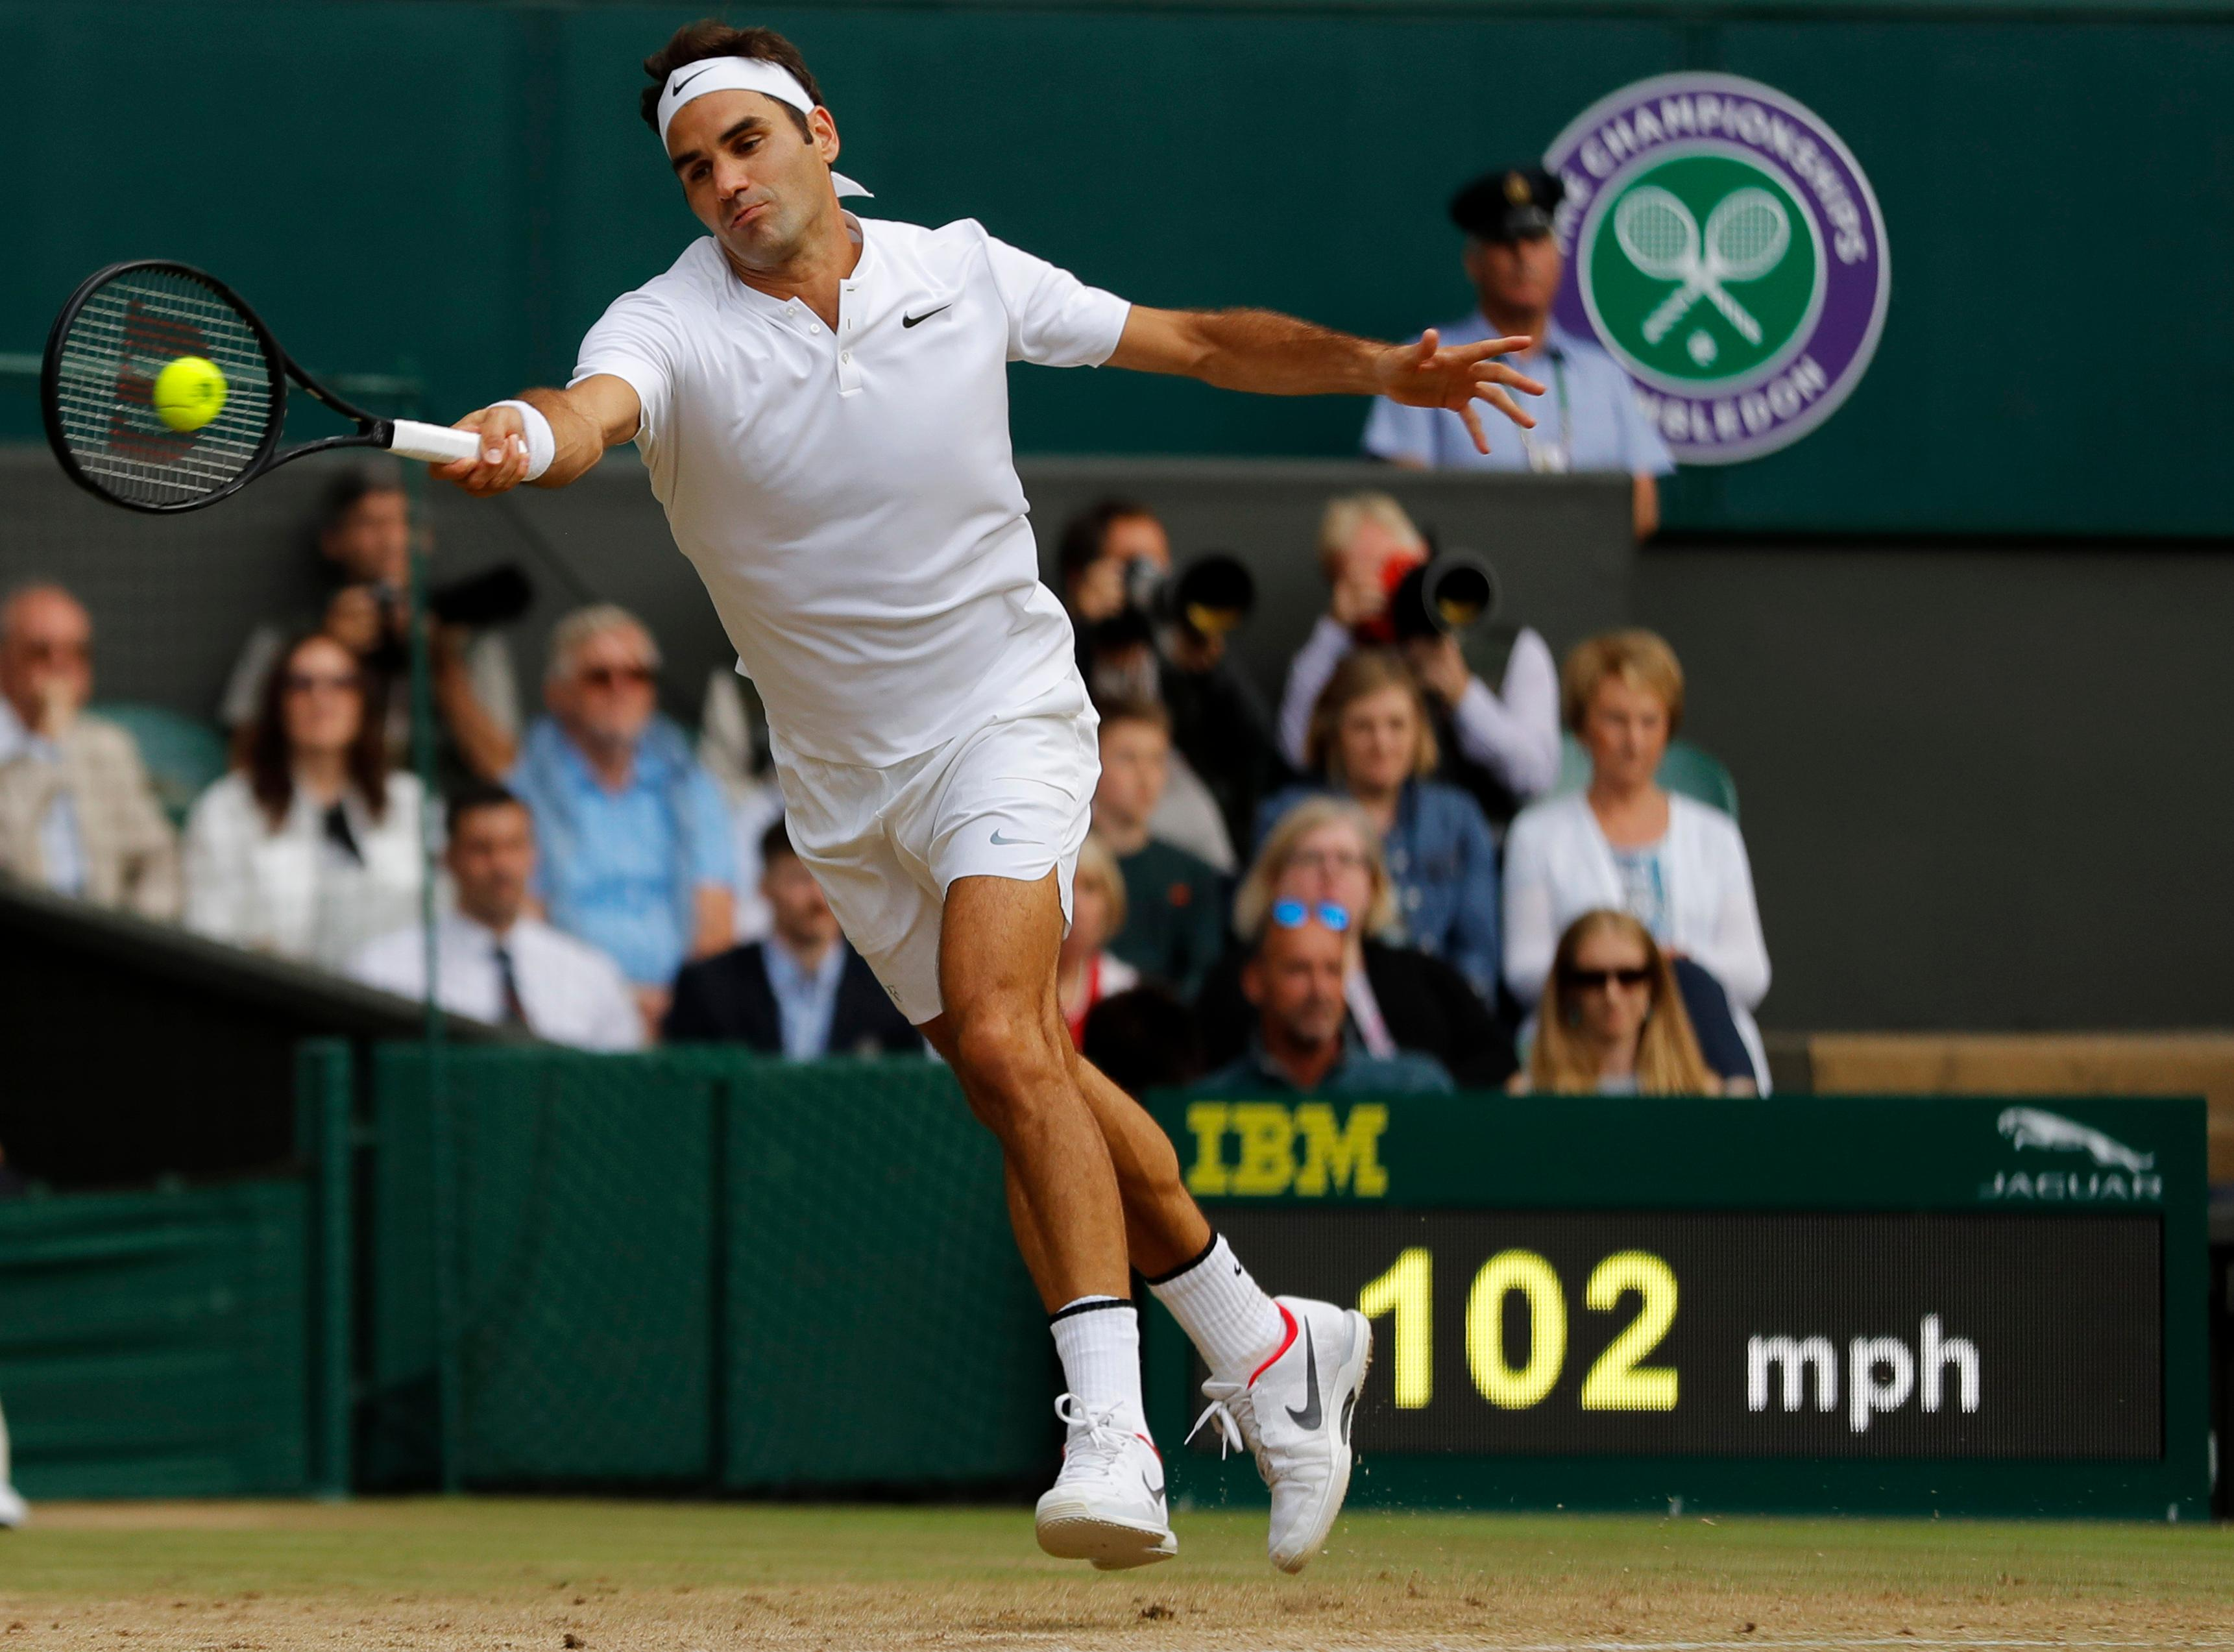 Switzerland's Roger Federer returns to Czech Republic's Tomas Berdych during their Men's Singles semifinal match on day eleven at the Wimbledon Tennis Championships in London, Friday, July 14, 2017. (AP Photo/Alastair Grant)